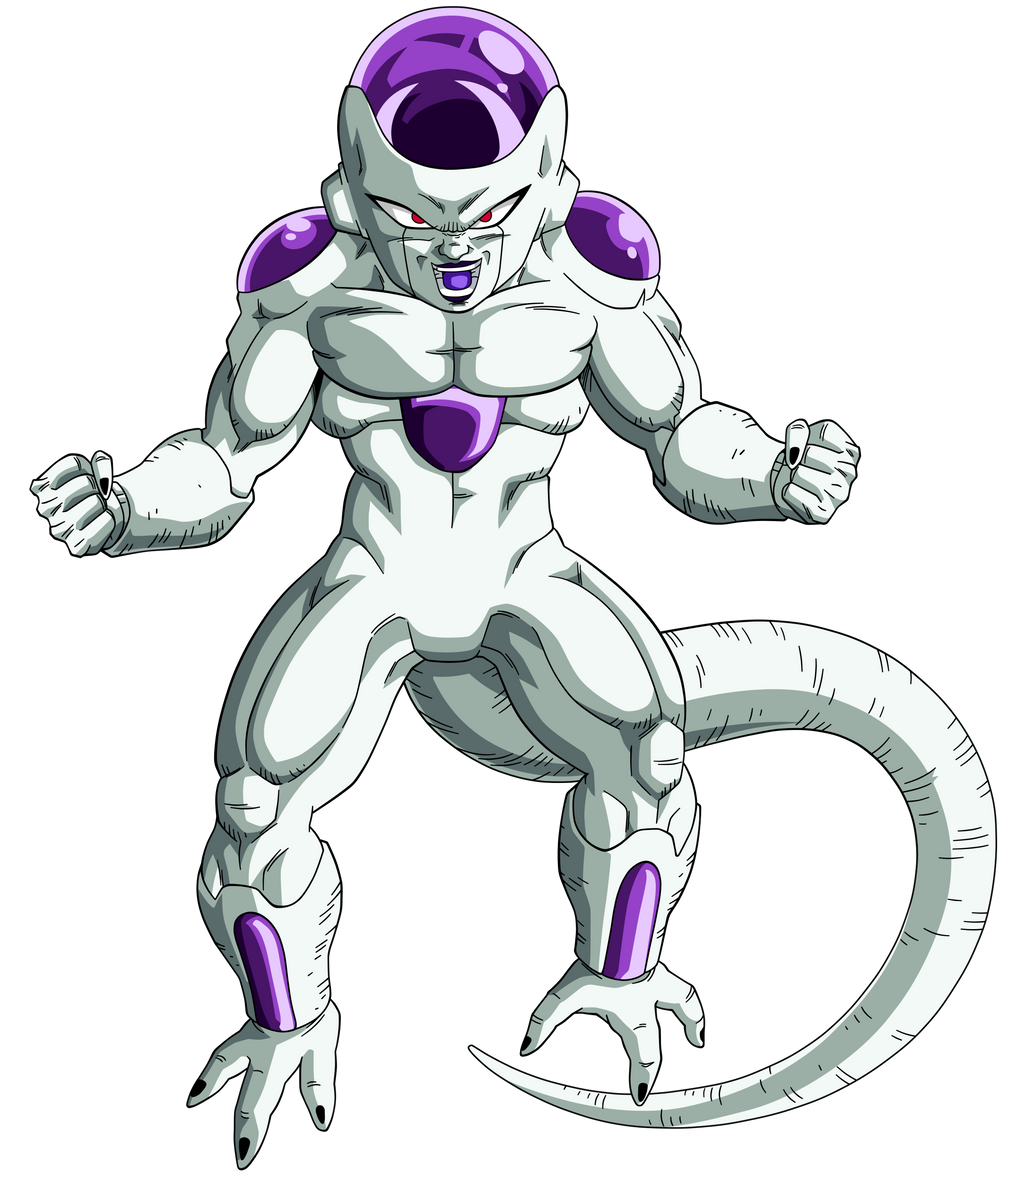 Joa Full Transformation Png: Frieza Final Form By Maffo1989 On DeviantArt